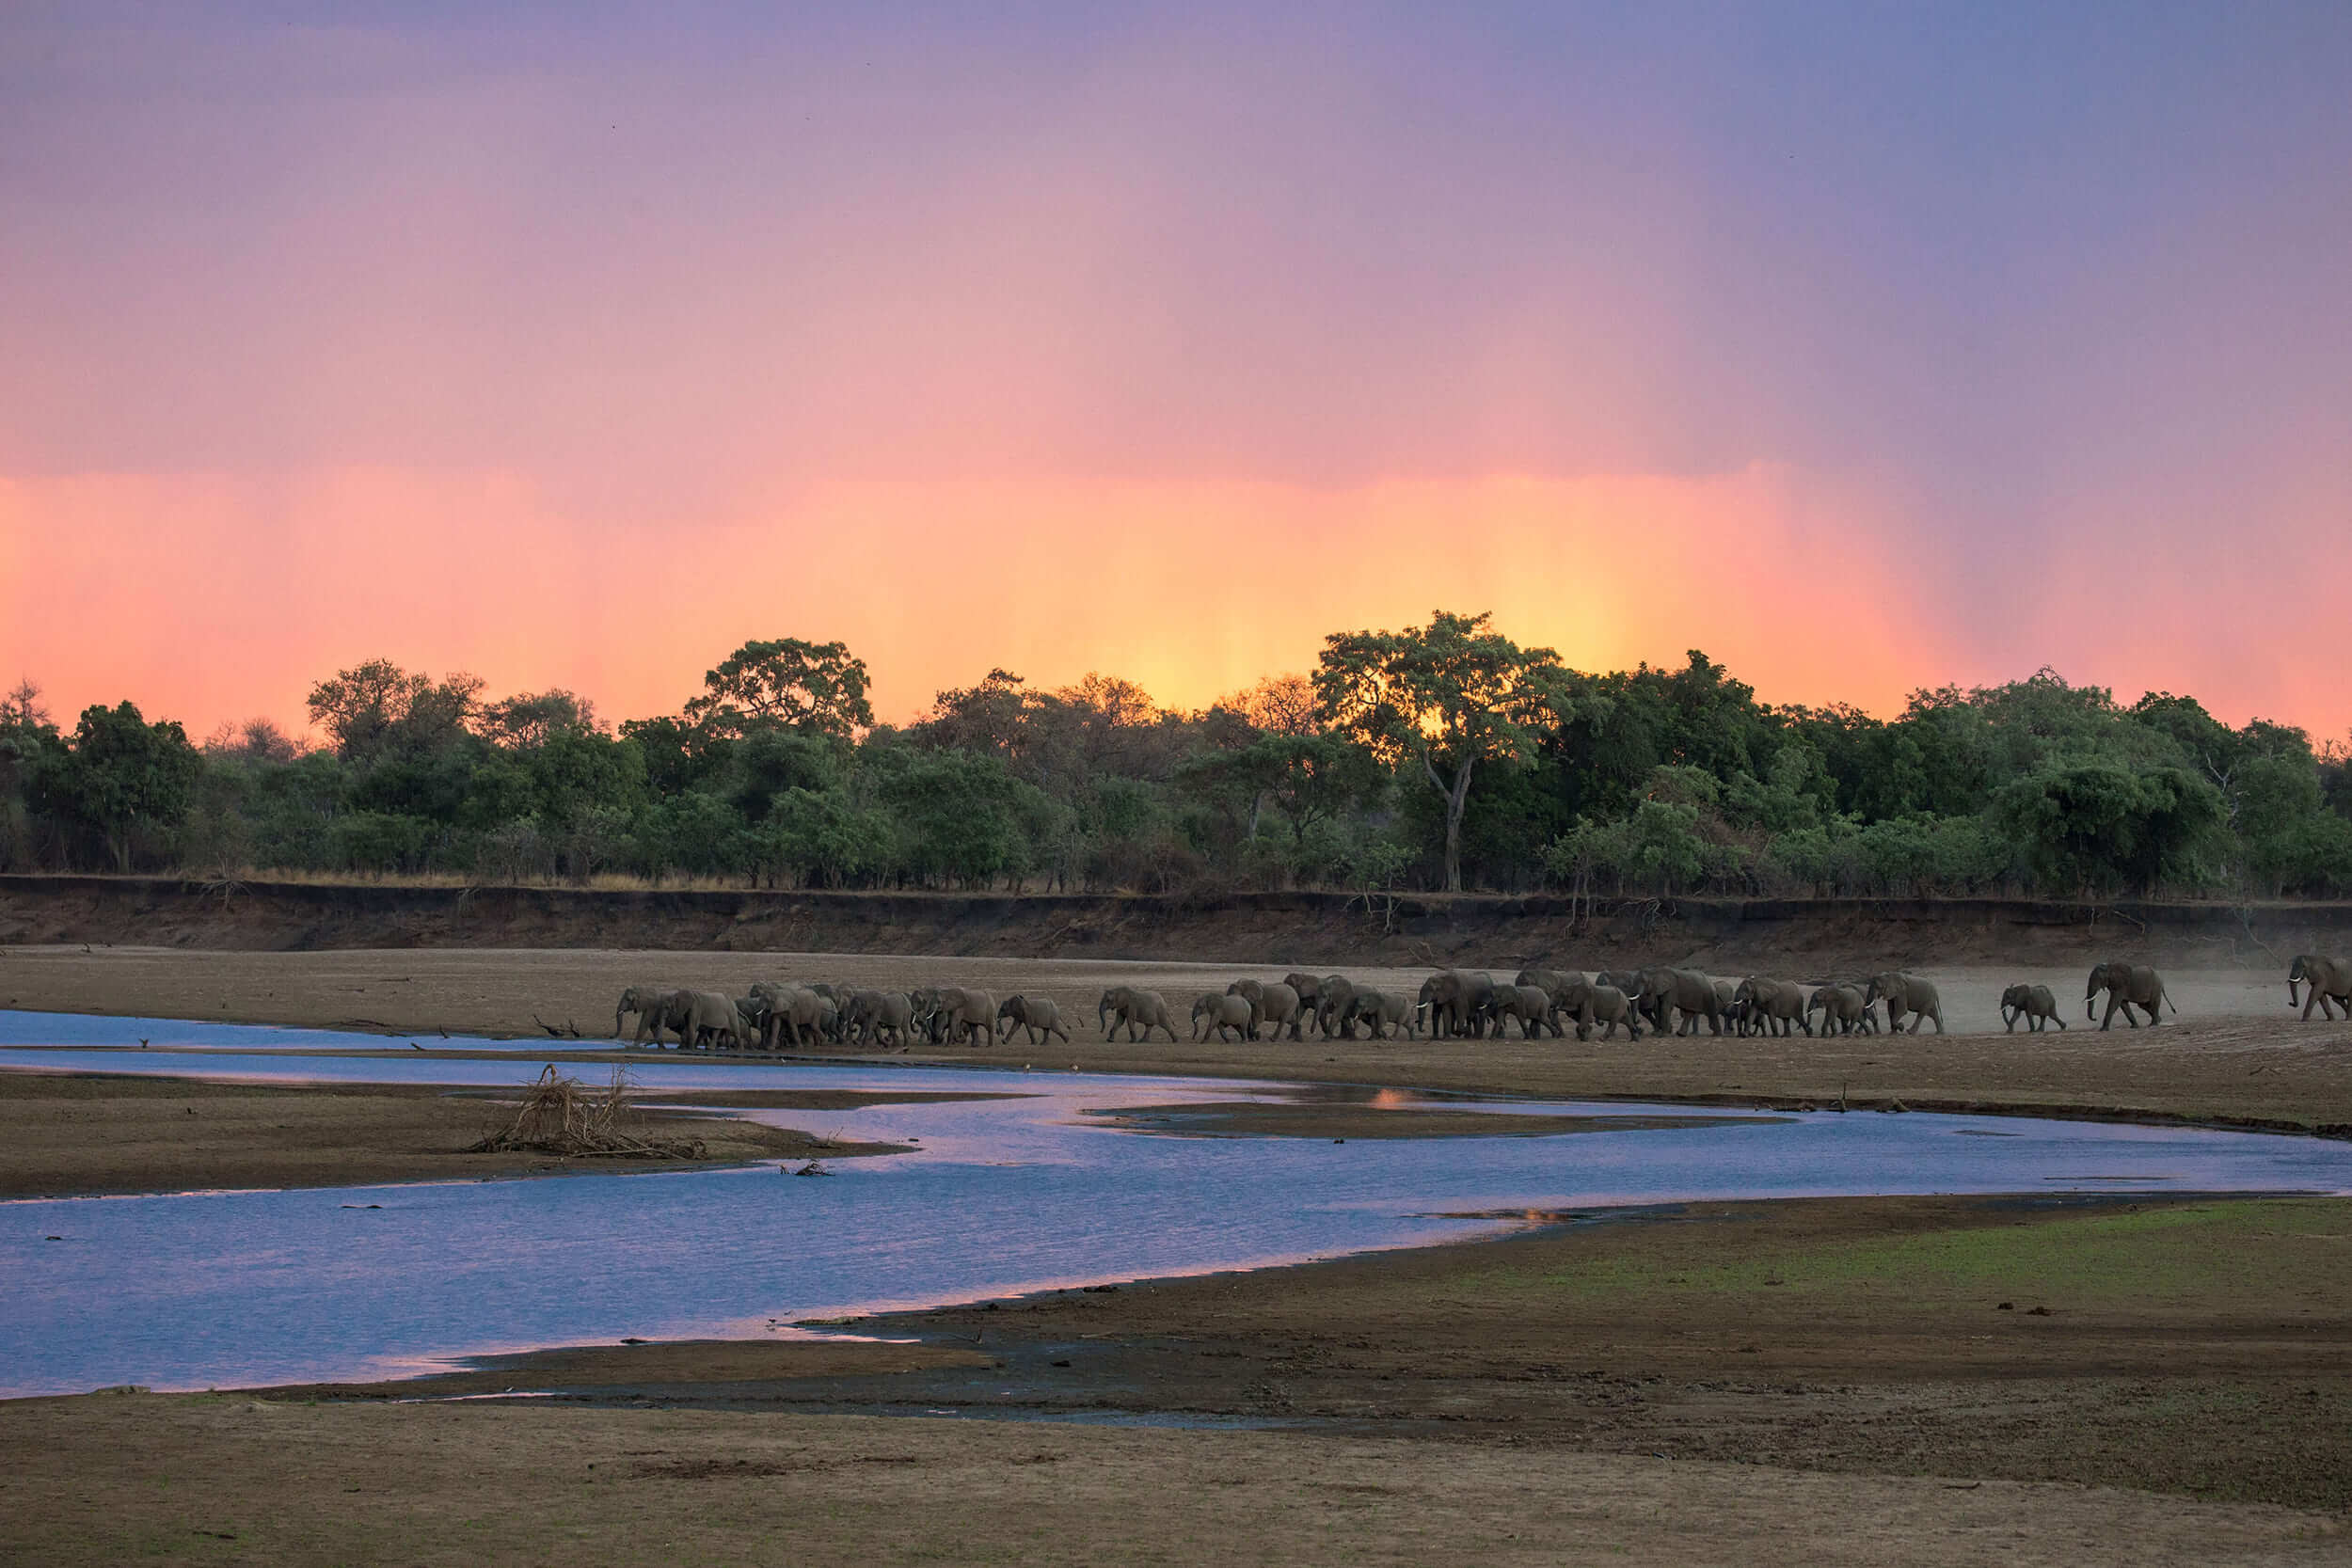 South Luangwa National Park, Olifanten steken de Luangwa rivier over, Zambia